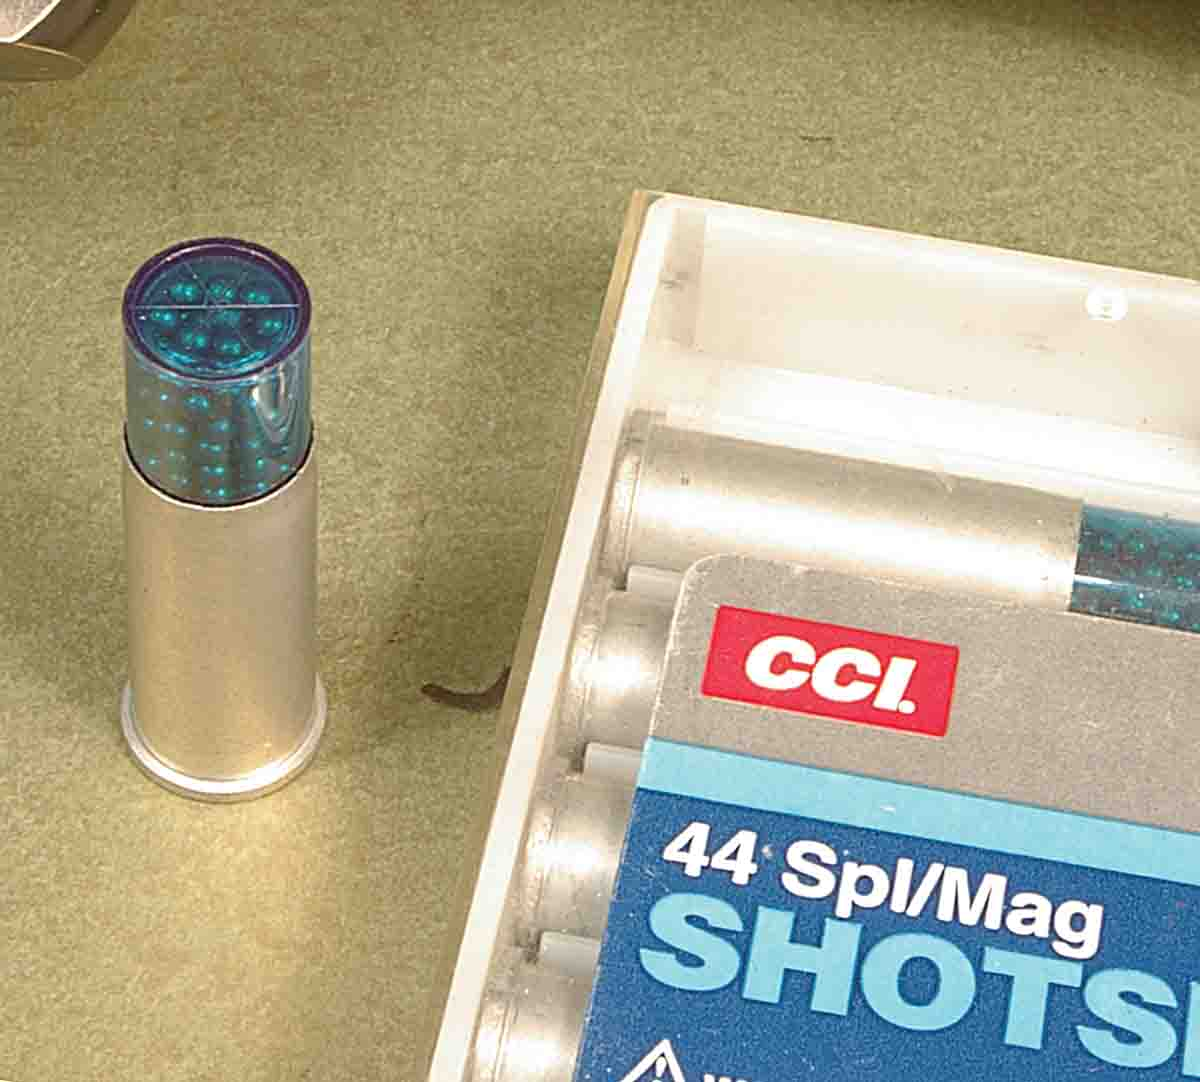 If you feel threatened by snakes or English sparrows, CCI makes a shotshell load for the .44.